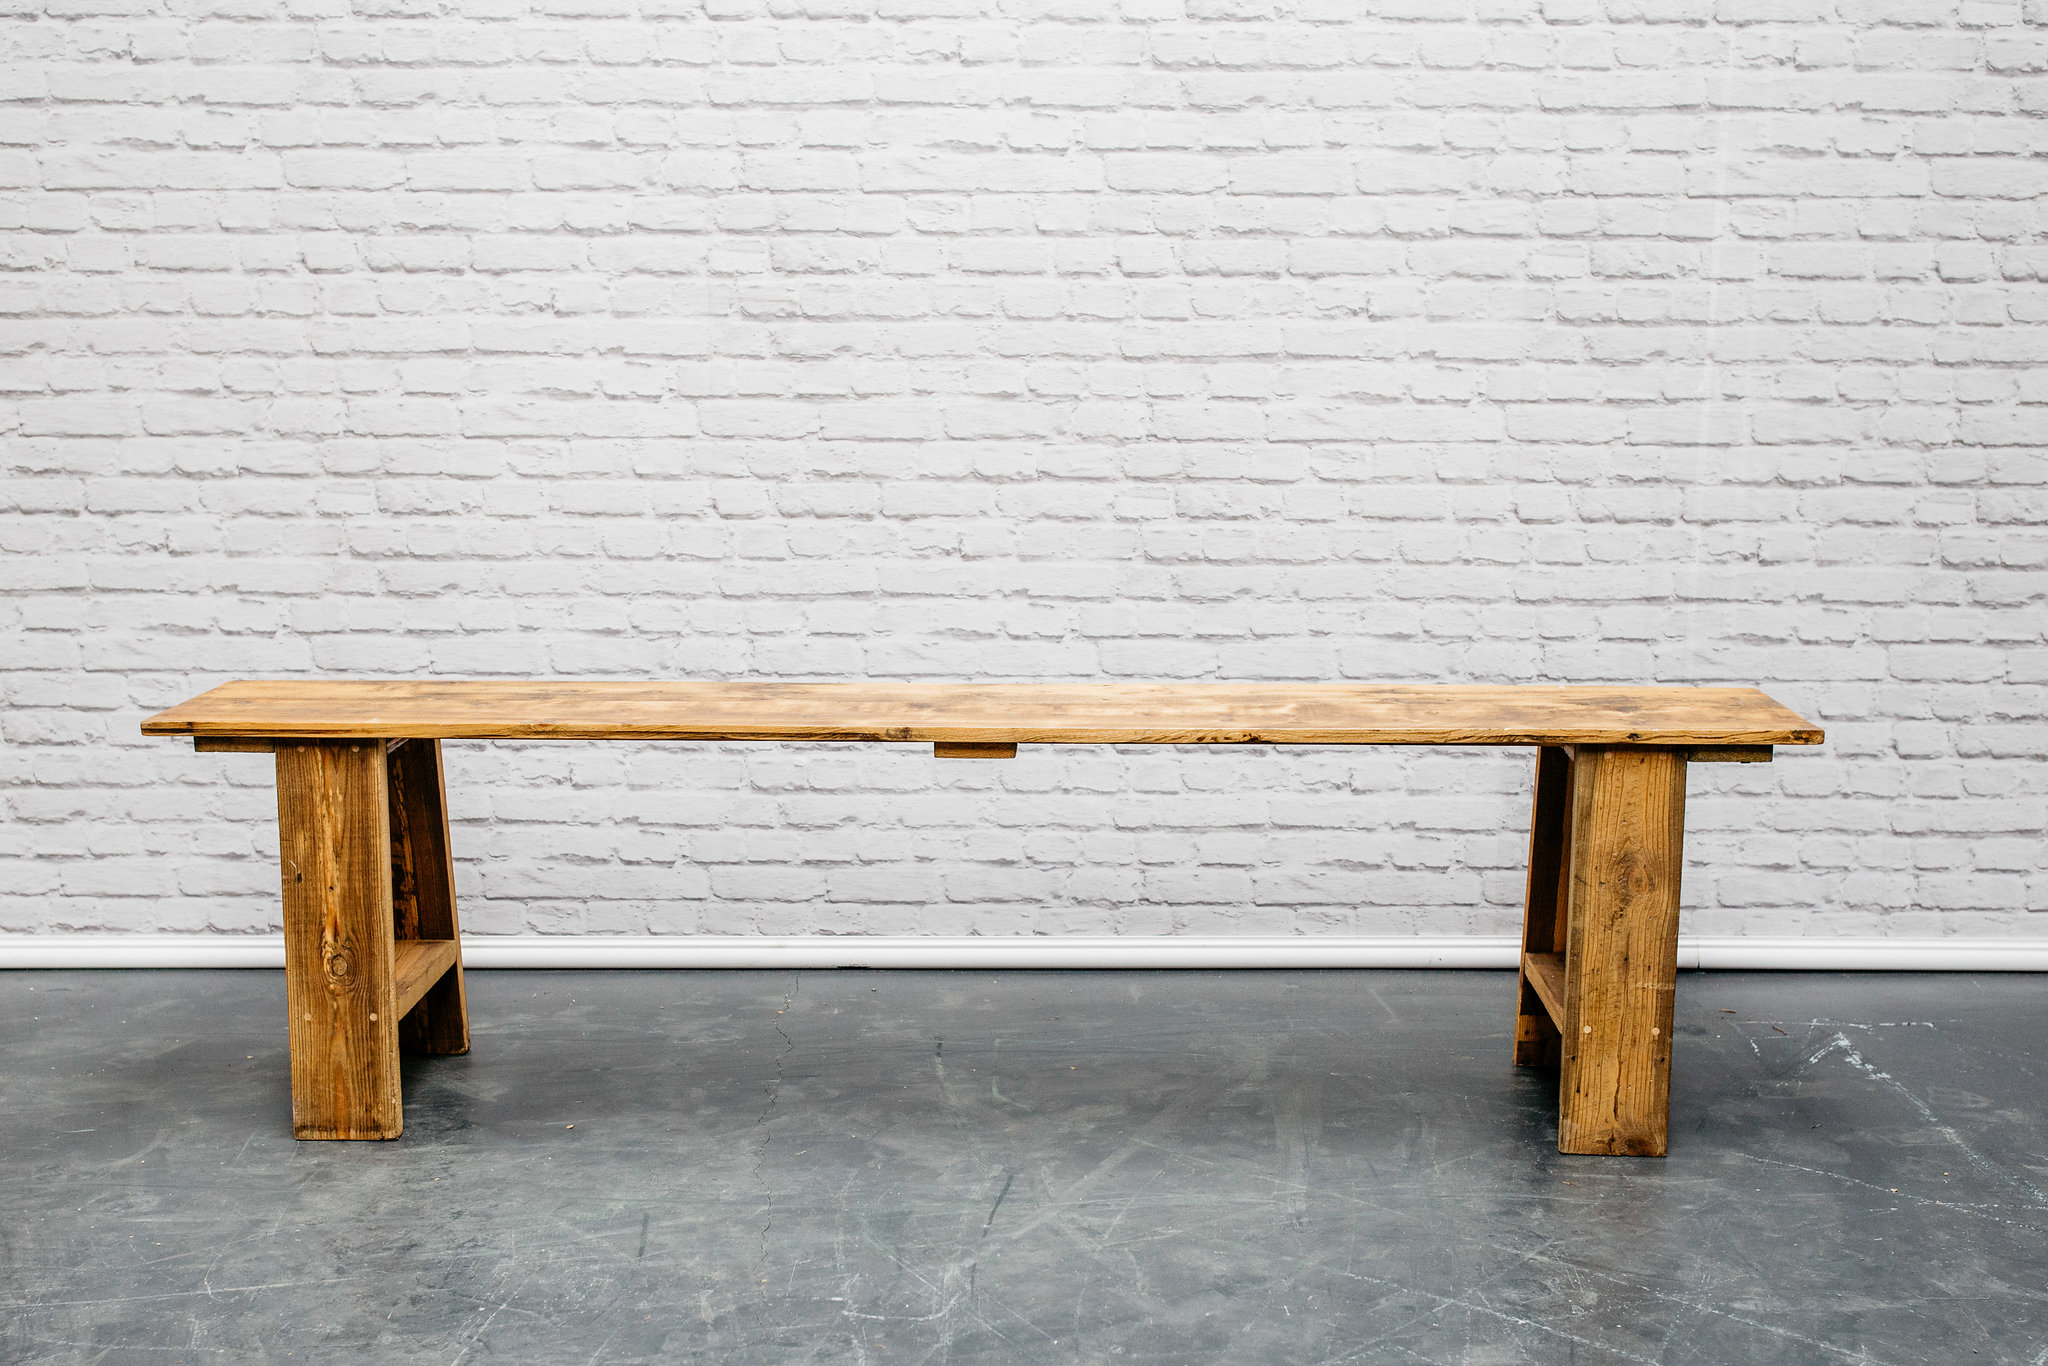 6ft Reclaimed Wood Bench